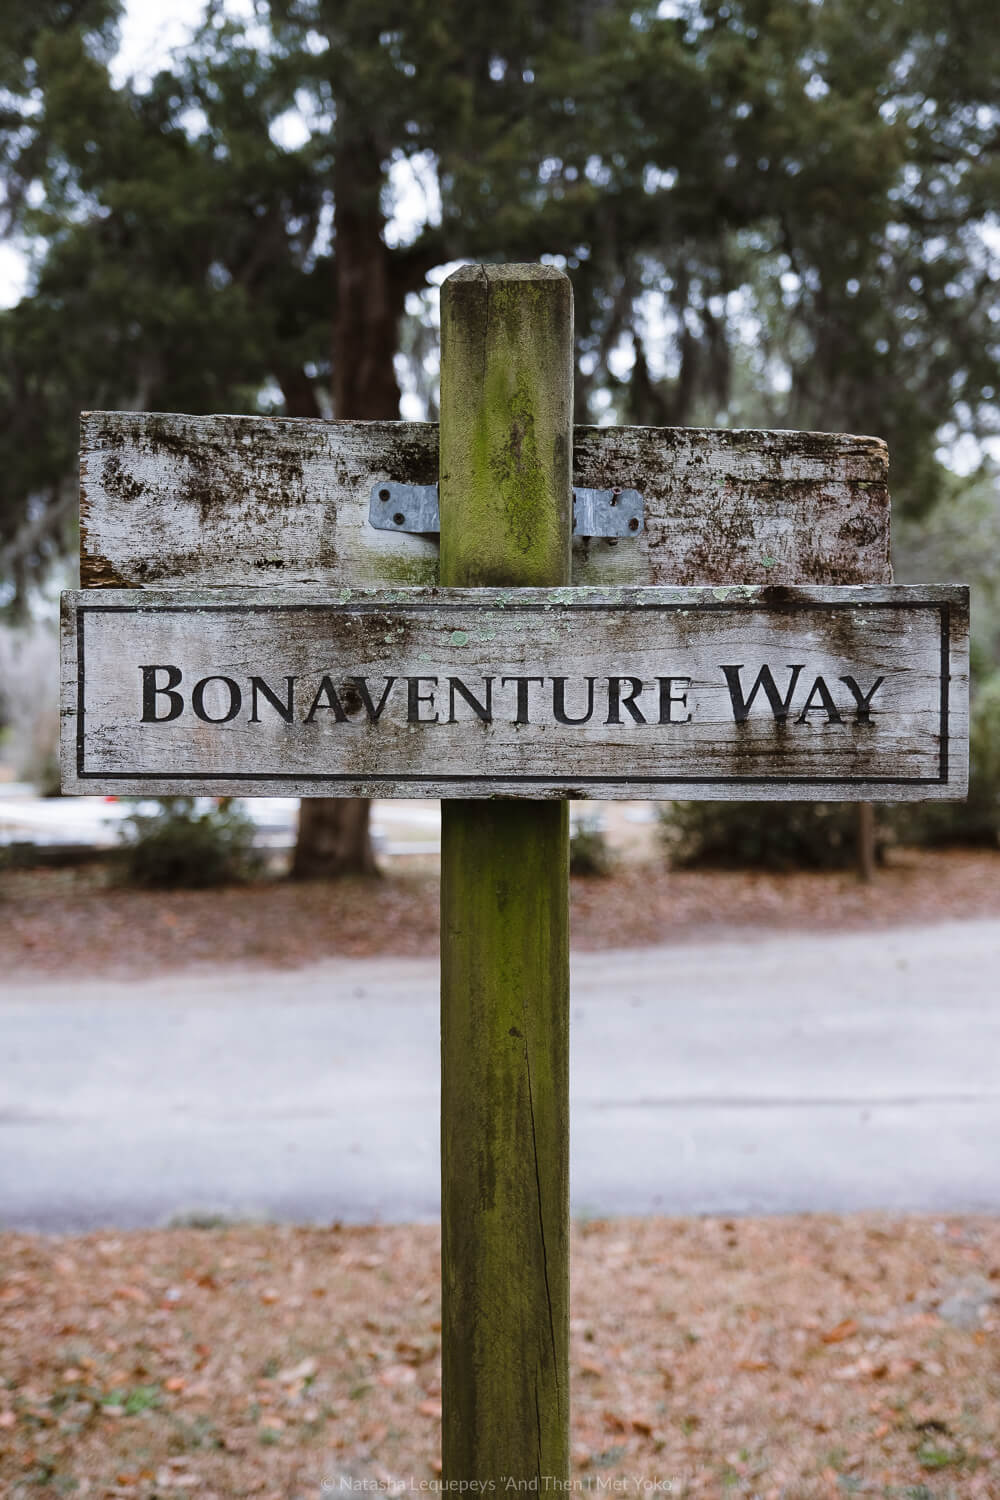 """Old sign for Bonaventure Way at Bonaventure Cemetery in Savannah, Georgia. Travel photography and guide by © Natasha Lequepeys for """"And Then I Met Yoko"""". #bonaventurecemetery #savannah #travelguide #travelblog #travelphotography #fujifilm"""